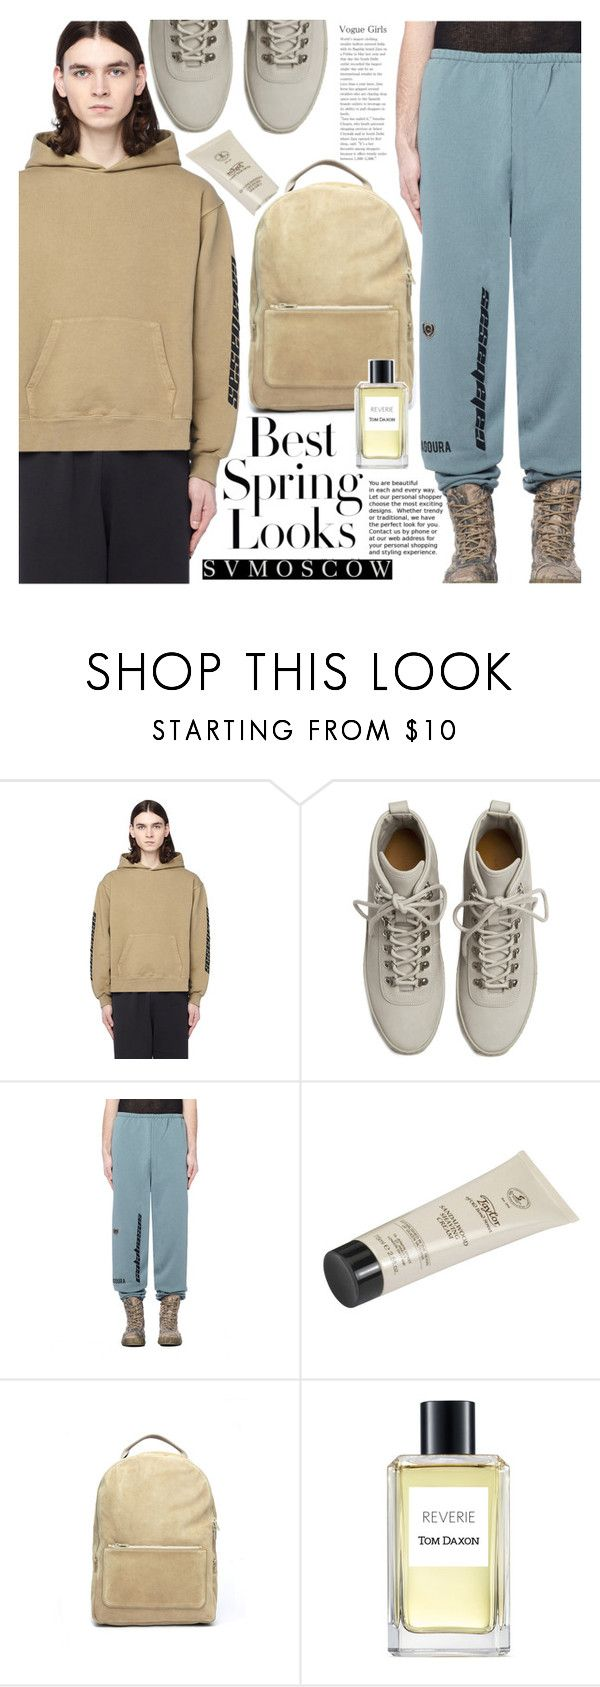 """YEEZY"" by vanjazivadinovic ❤ liked on Polyvore featuring Yeezy by Kanye West, Fear of God, Taylor of Old Bond Street, H&M, Tom Daxon and svmoscow"